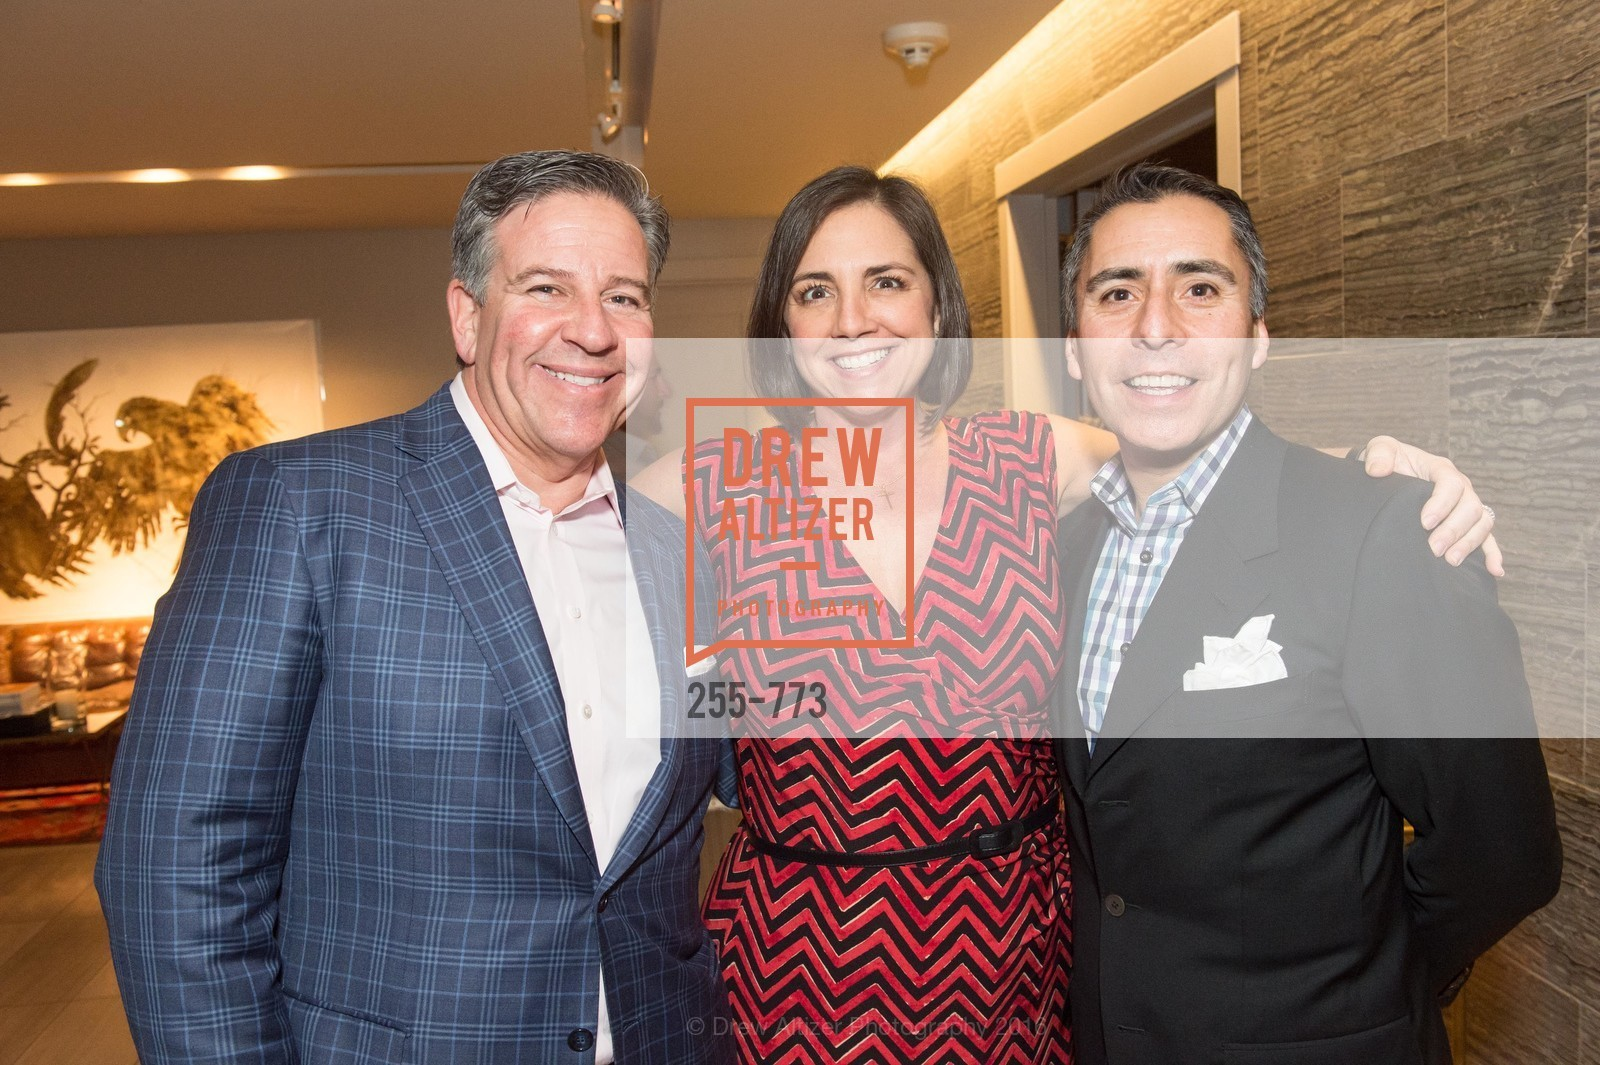 Gregg Lynn, Rachelle Martini, Paul Ybarbo, Sotheby's International Realty's Celebrates the New Year, The Battery, Penthouse. 717 Battery St, January 27th, 2016,Drew Altizer, Drew Altizer Photography, full-service agency, private events, San Francisco photographer, photographer california